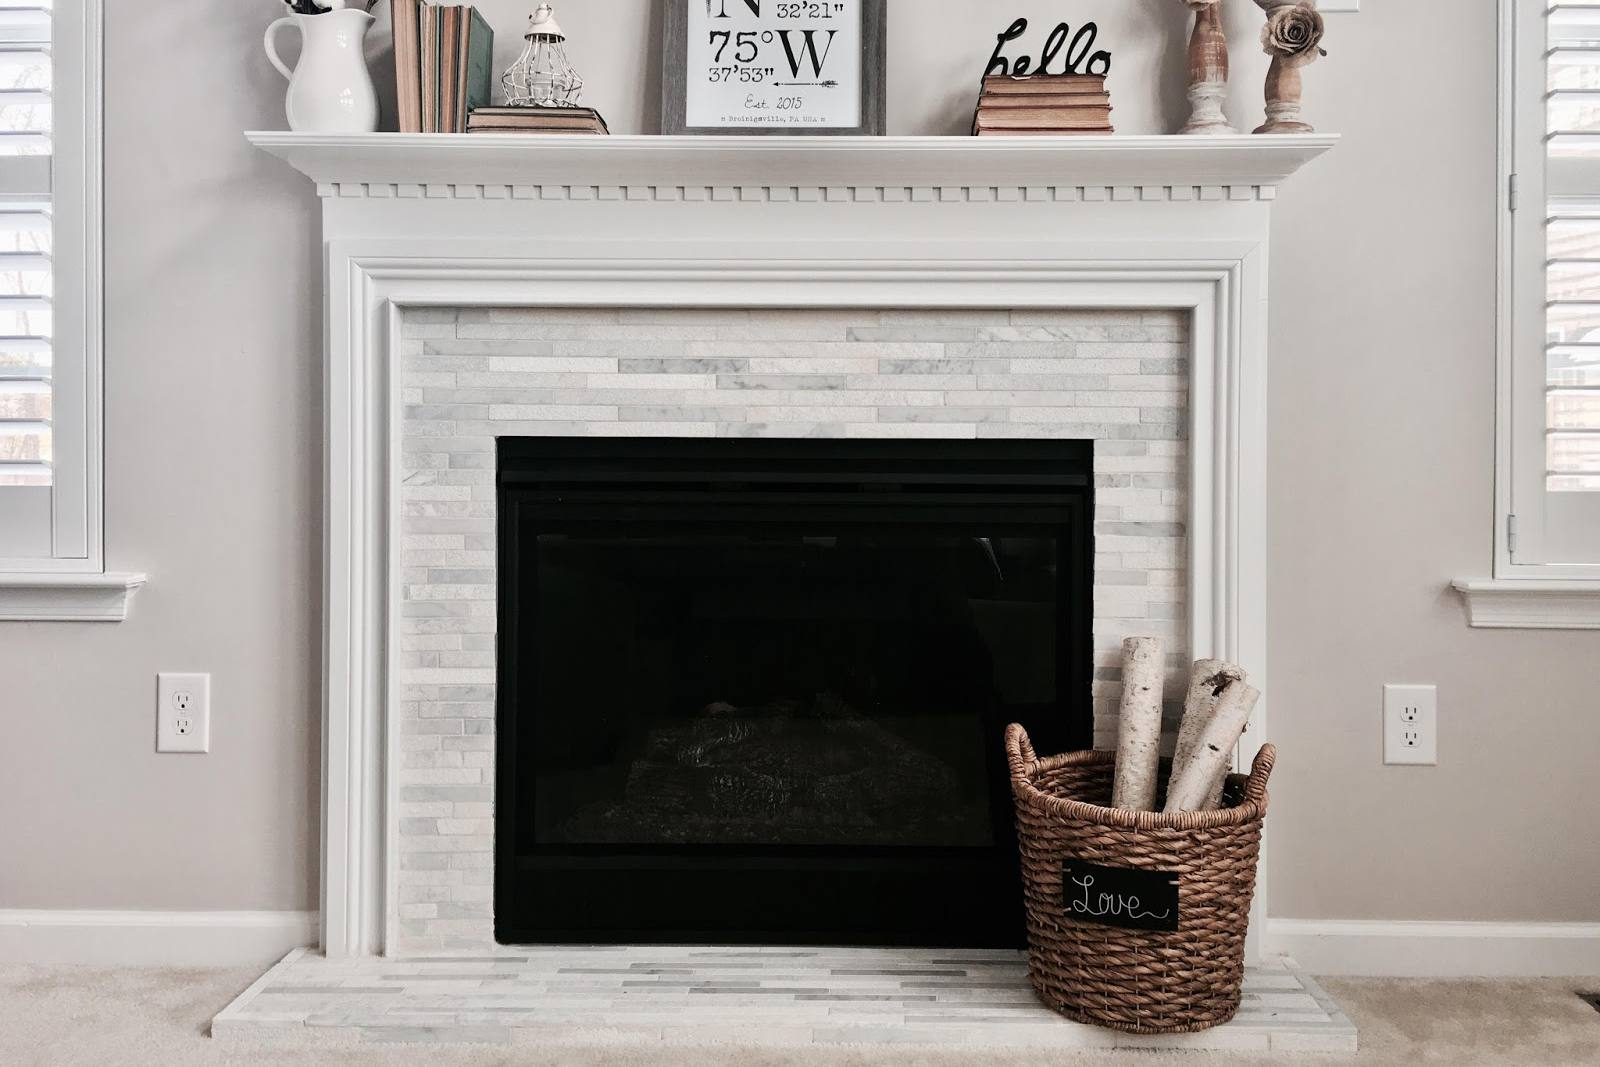 Top tiles around fireplace lw34 roccommunity - Ideas to cover fireplace opening ...